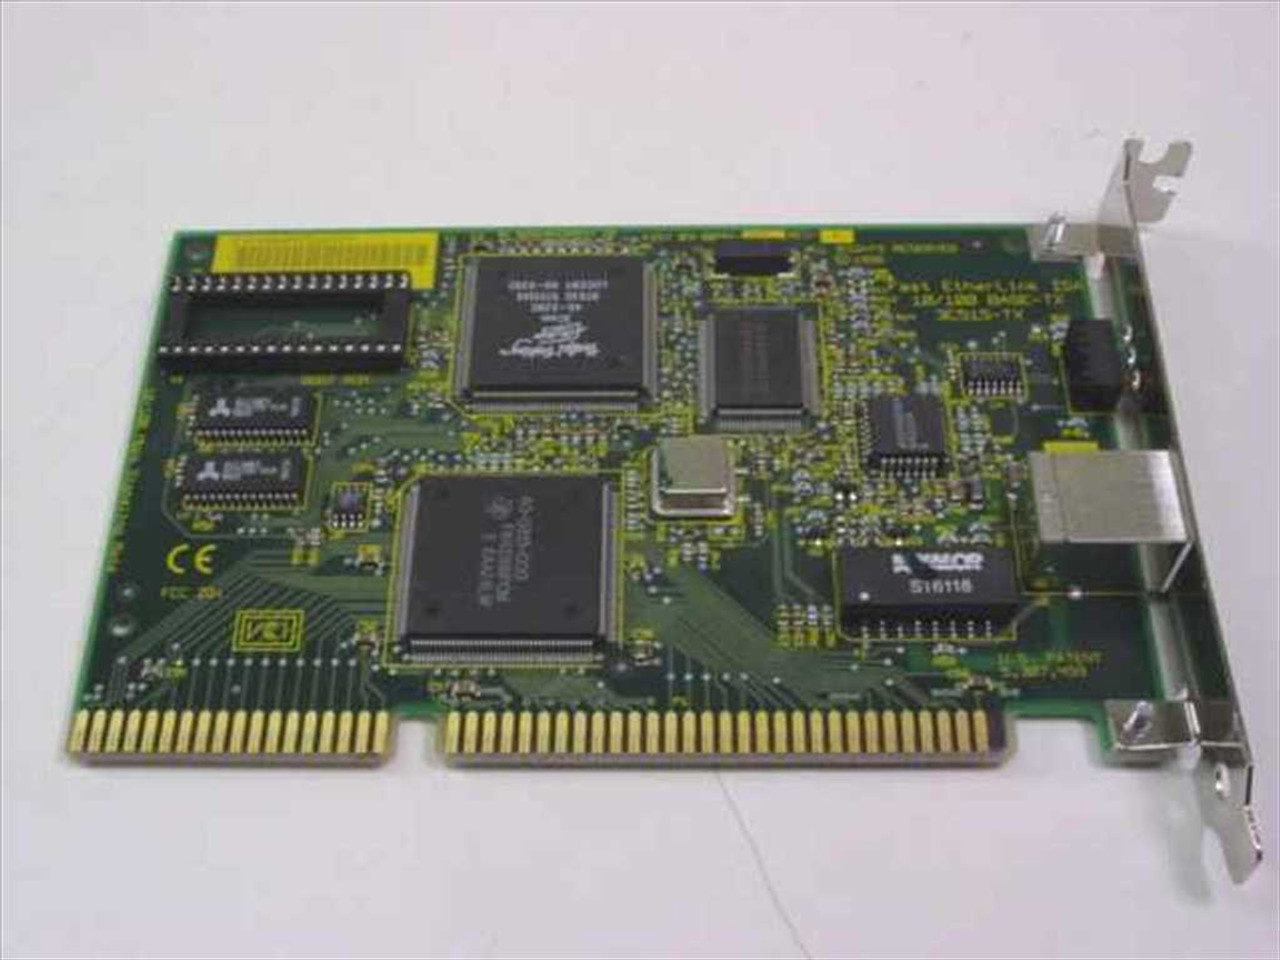 3COM 3C515N DRIVER FOR WINDOWS 7